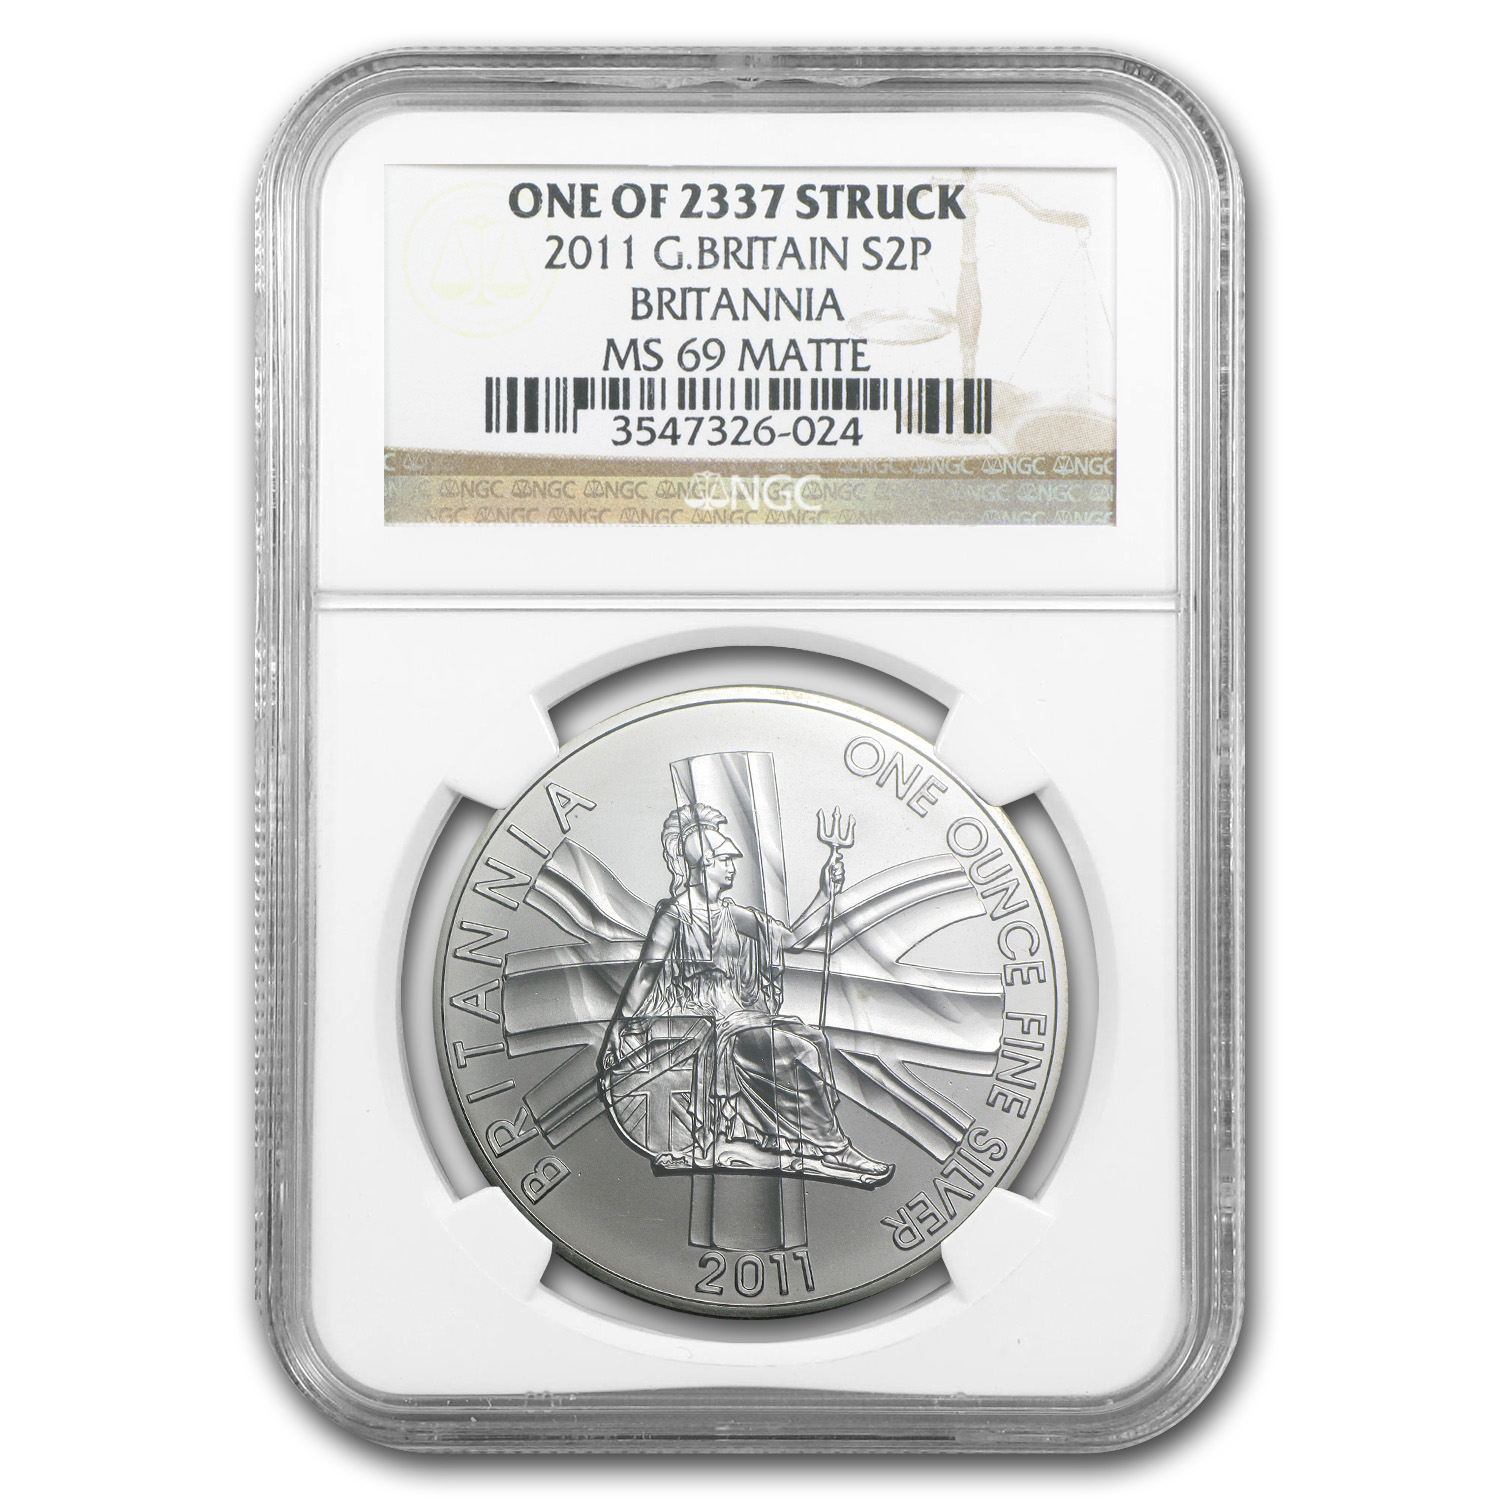 2011 1 oz Silver Britannia MS-69 Matte NGC (One of 2,337 struck)